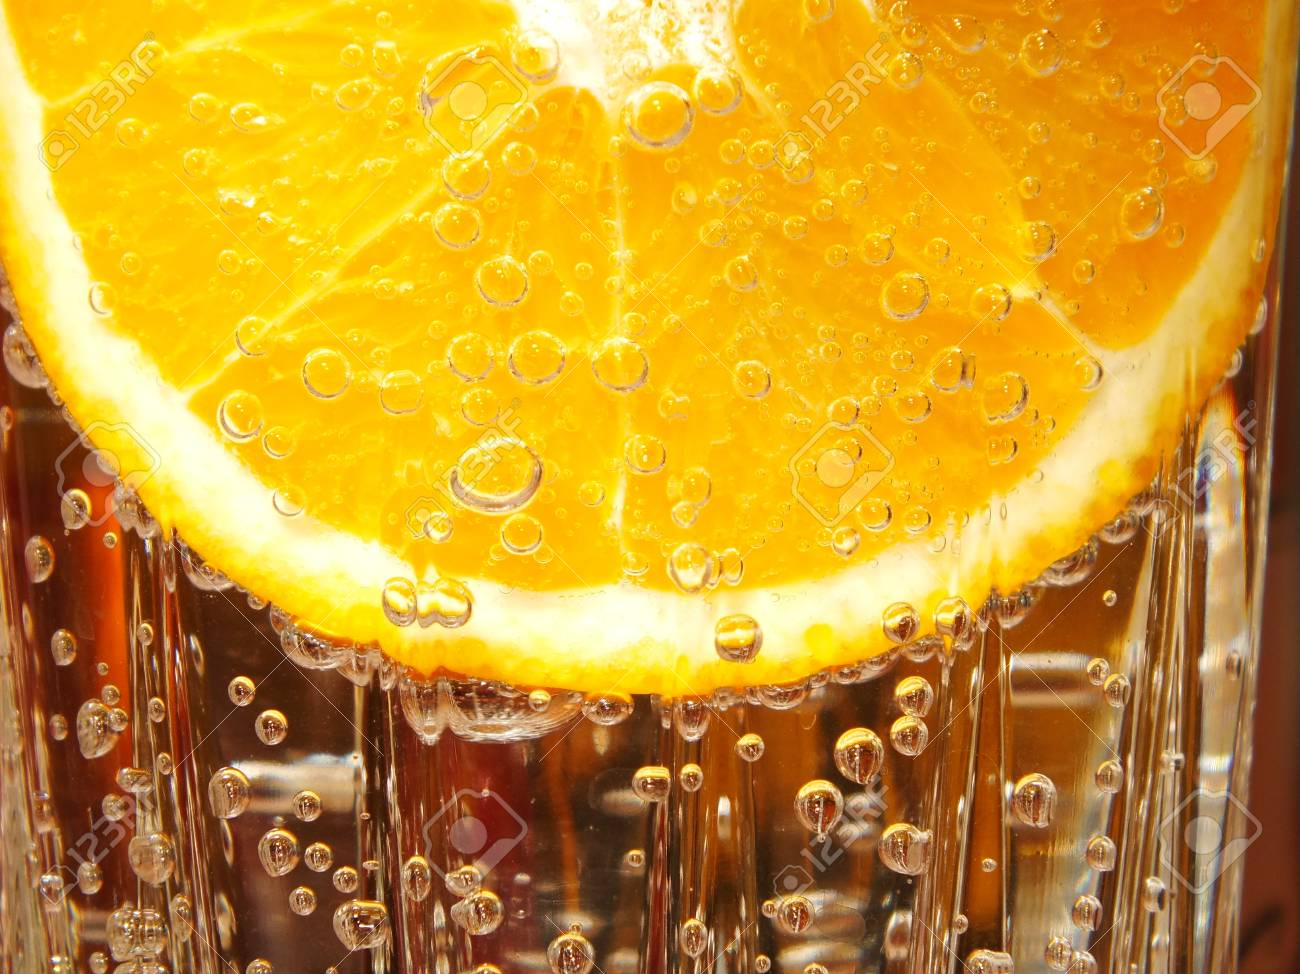 Orange slice in water with bubbles Stock Photo - 17068437